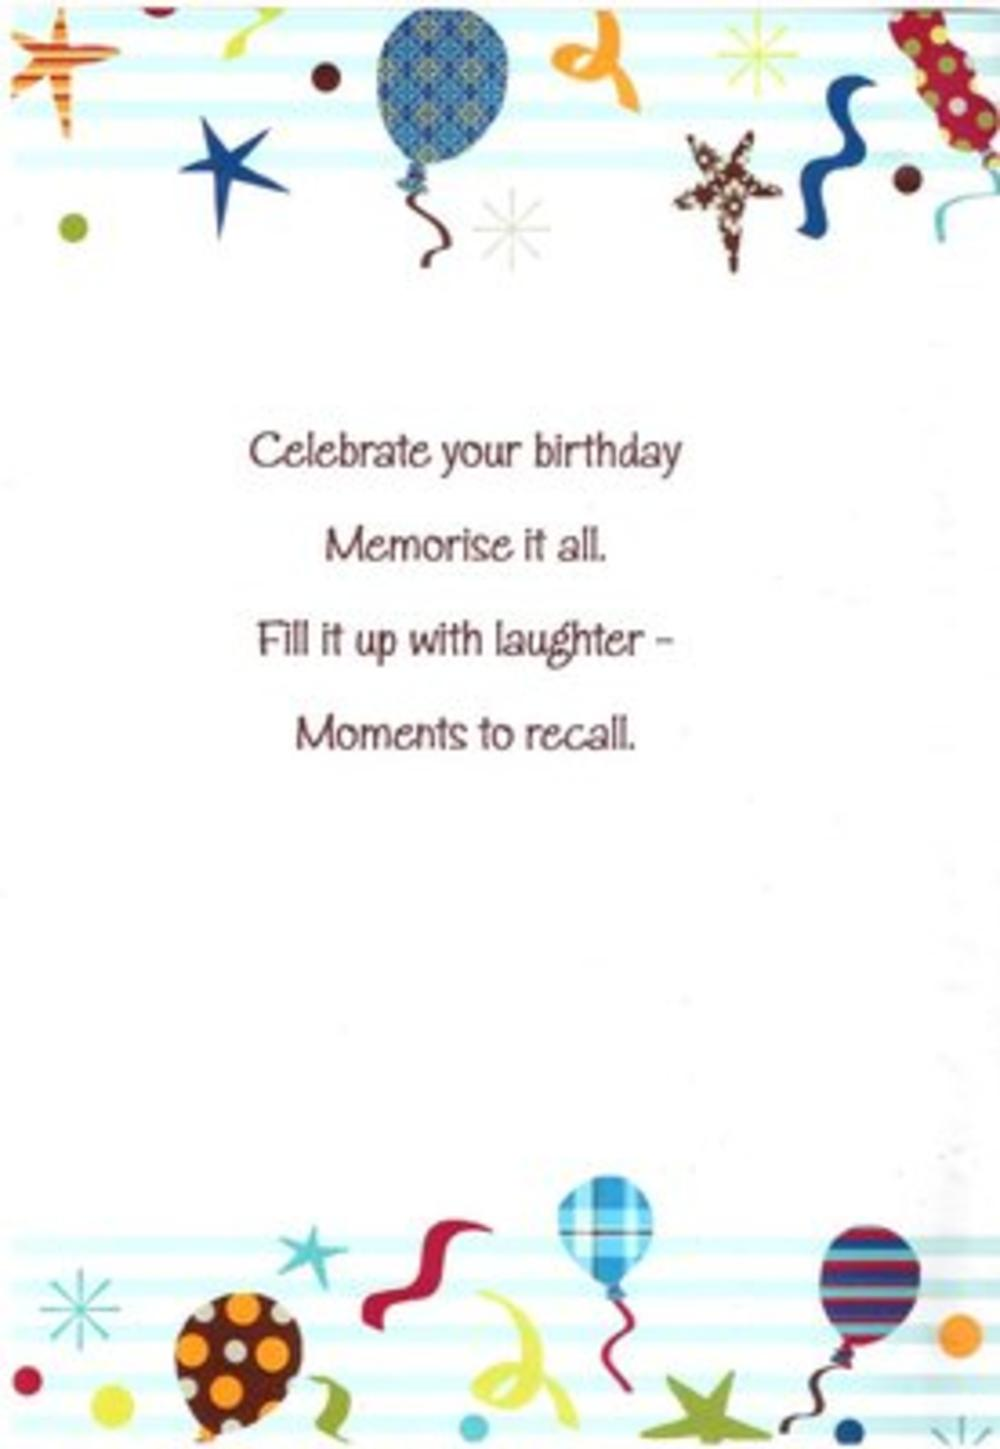 90th birthday card verses image collections birthday cards ideas 90th birthday verses for cards gallery birthday cards ideas 90th birthday card verses pictures to pin bookmarktalkfo Images